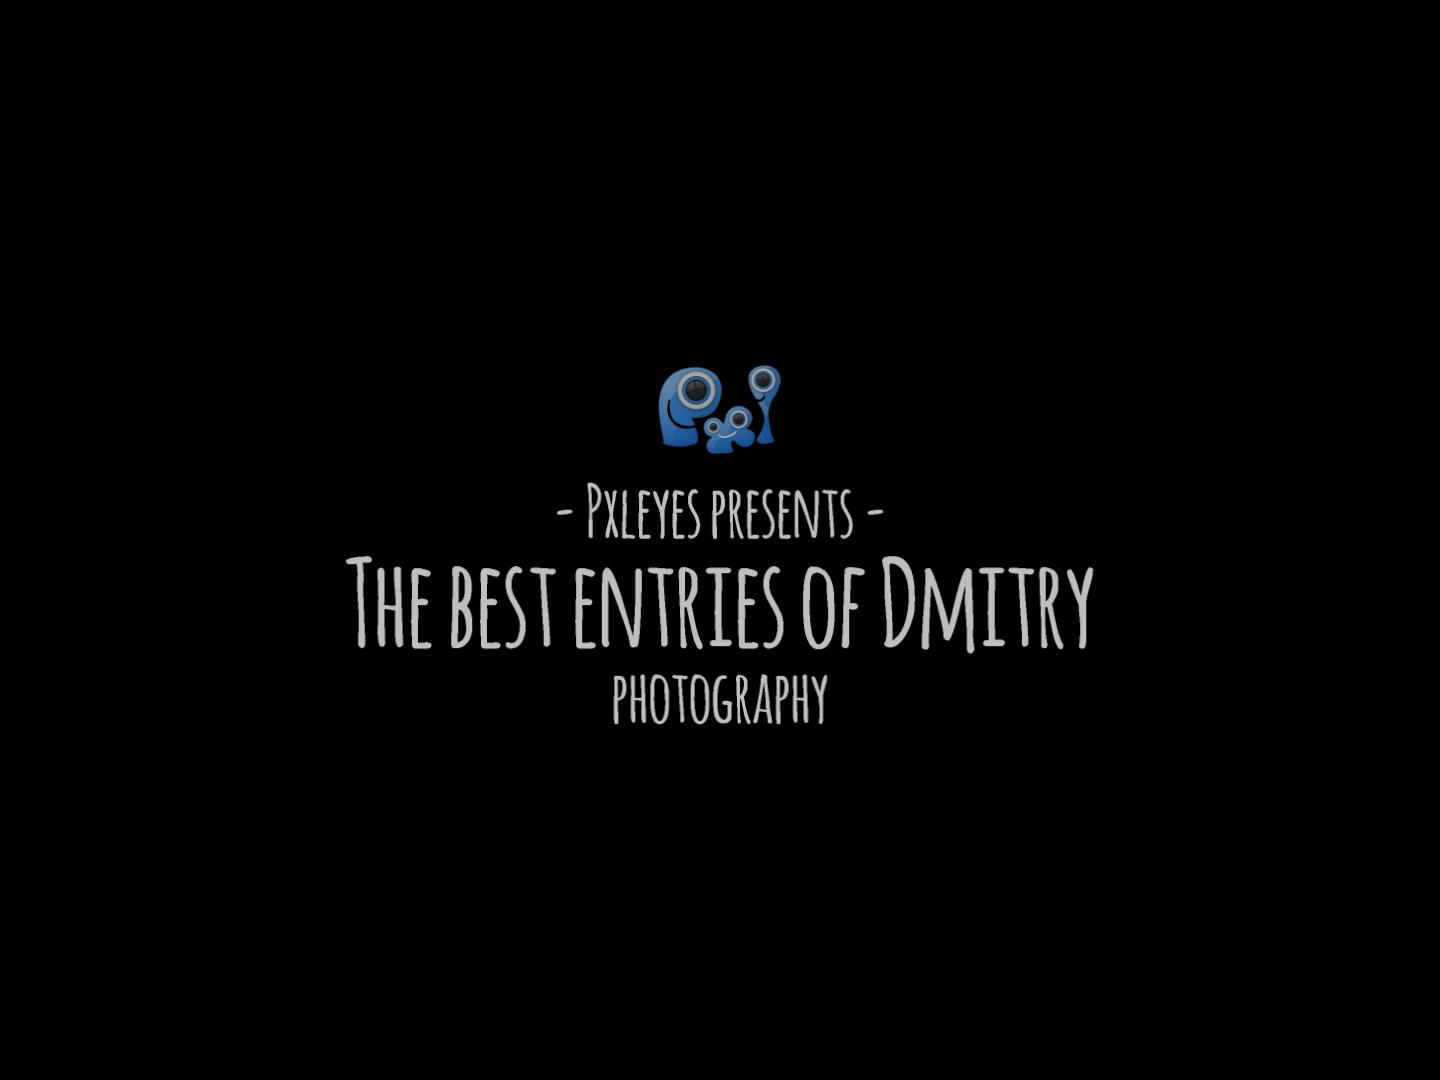 The best entries of Dmitry